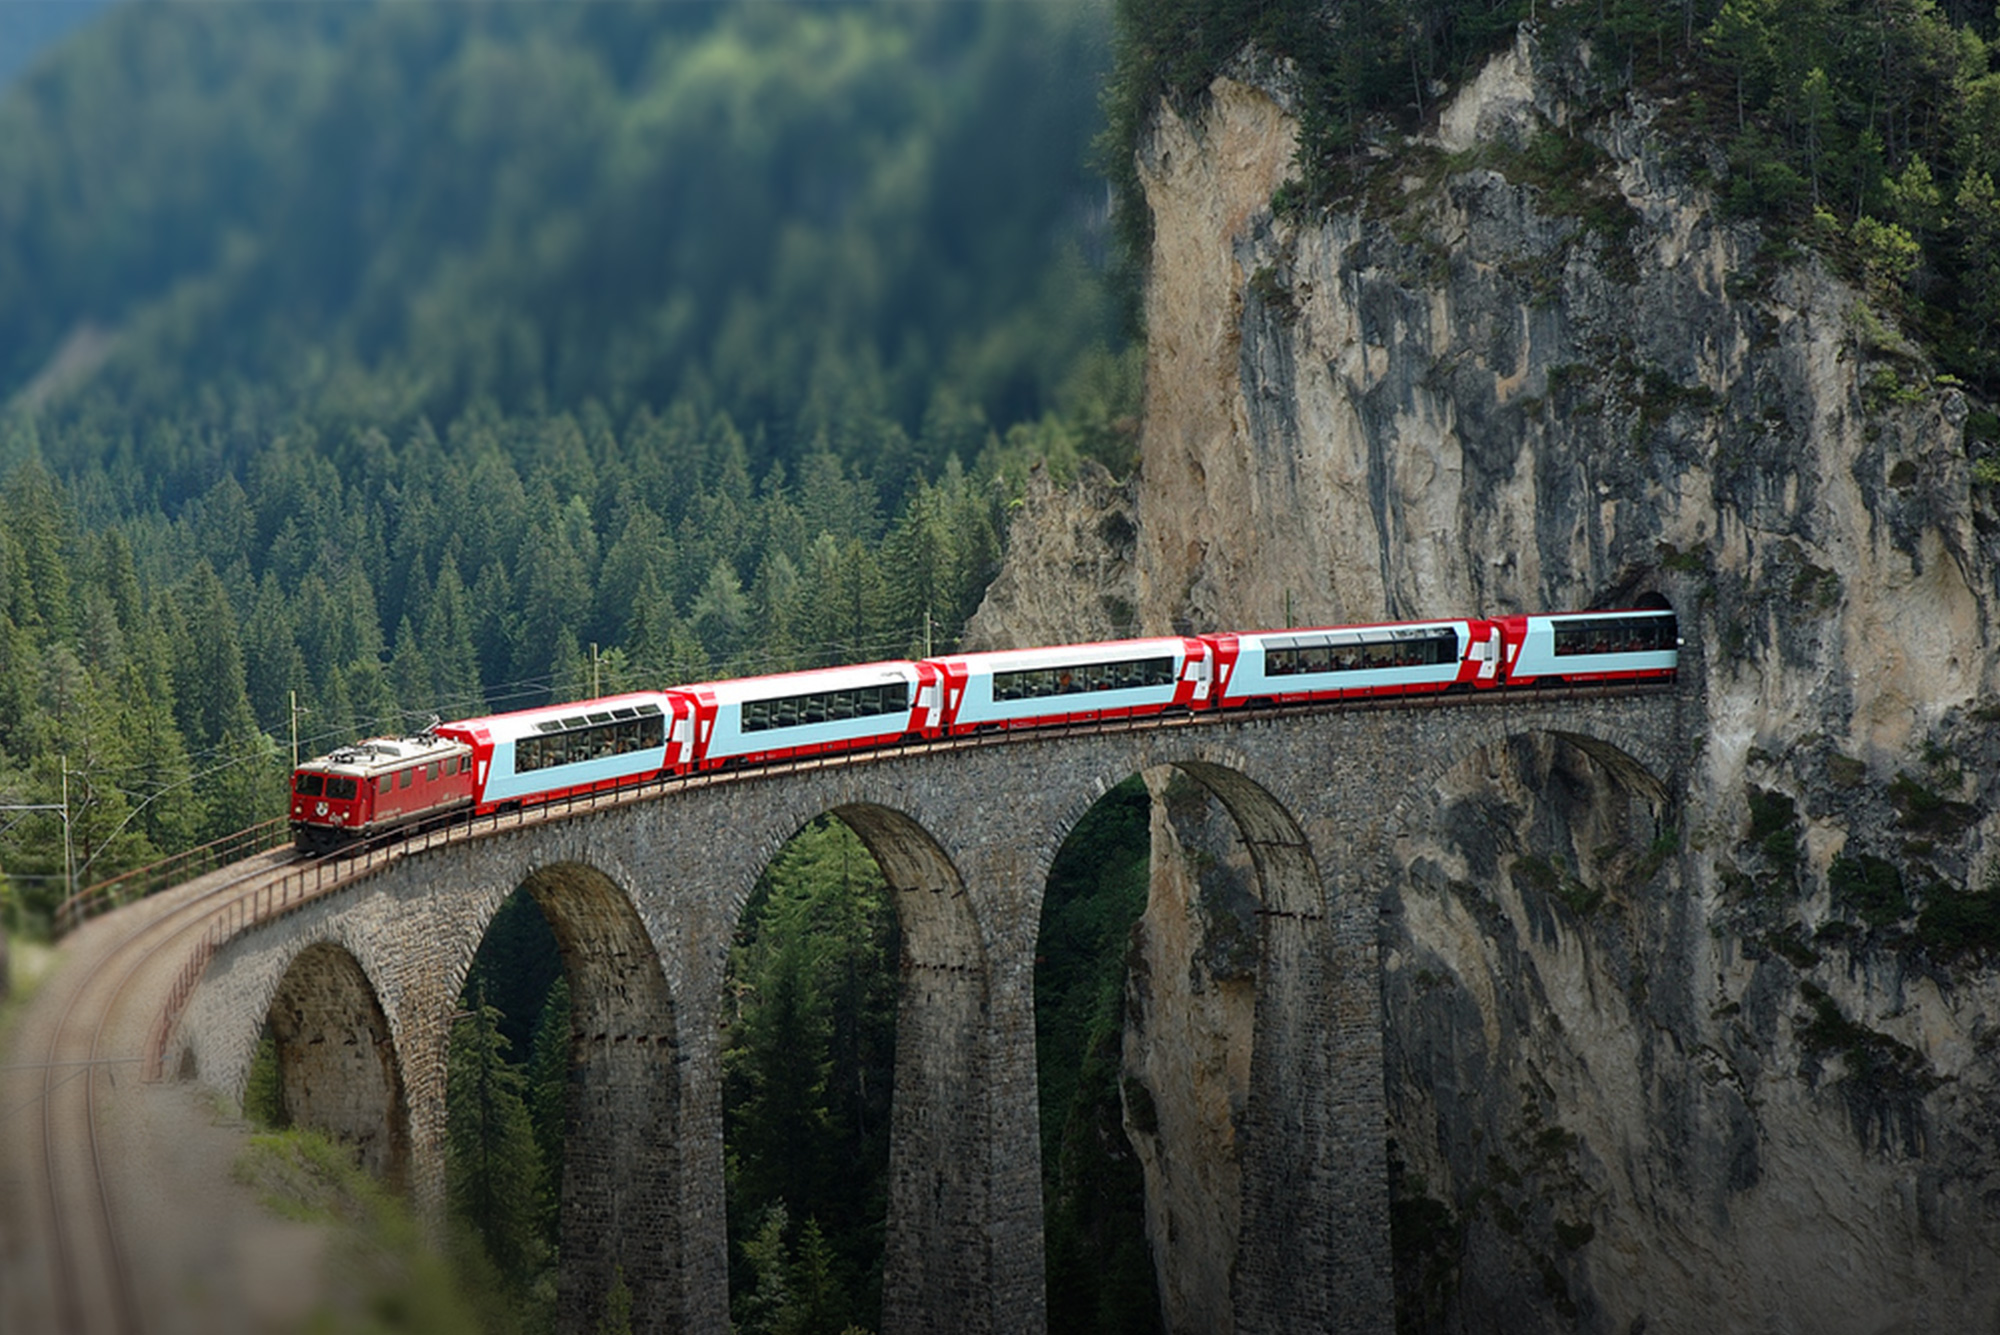 Perhaps it's all those pesky Swiss flag red crosses on the train that upset the attacker?